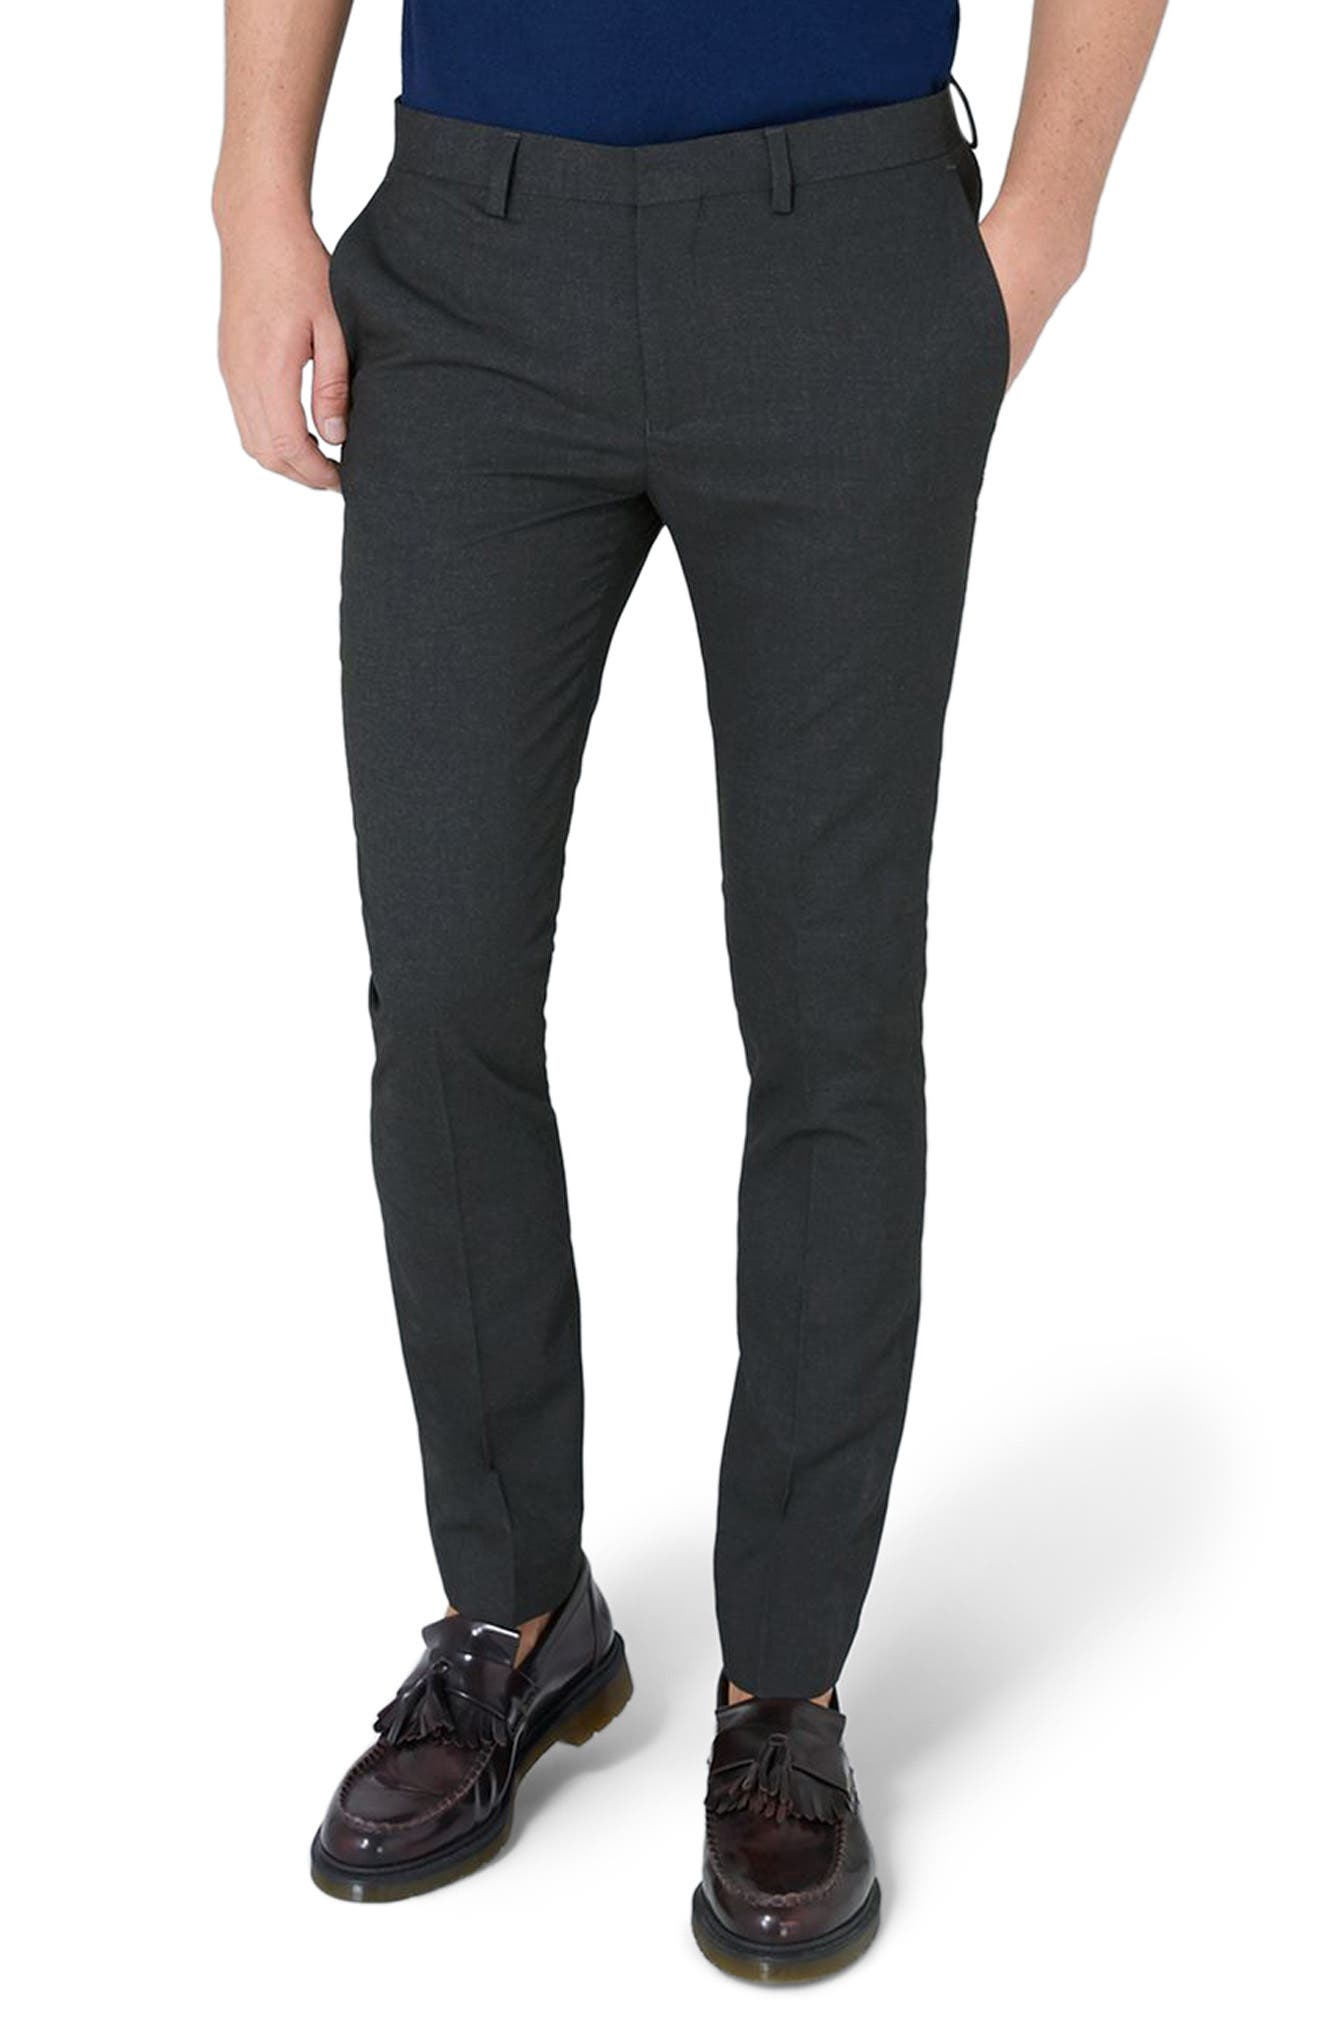 Ultra Skinny Fit Trousers,                             Main thumbnail 1, color,                             Charcoal